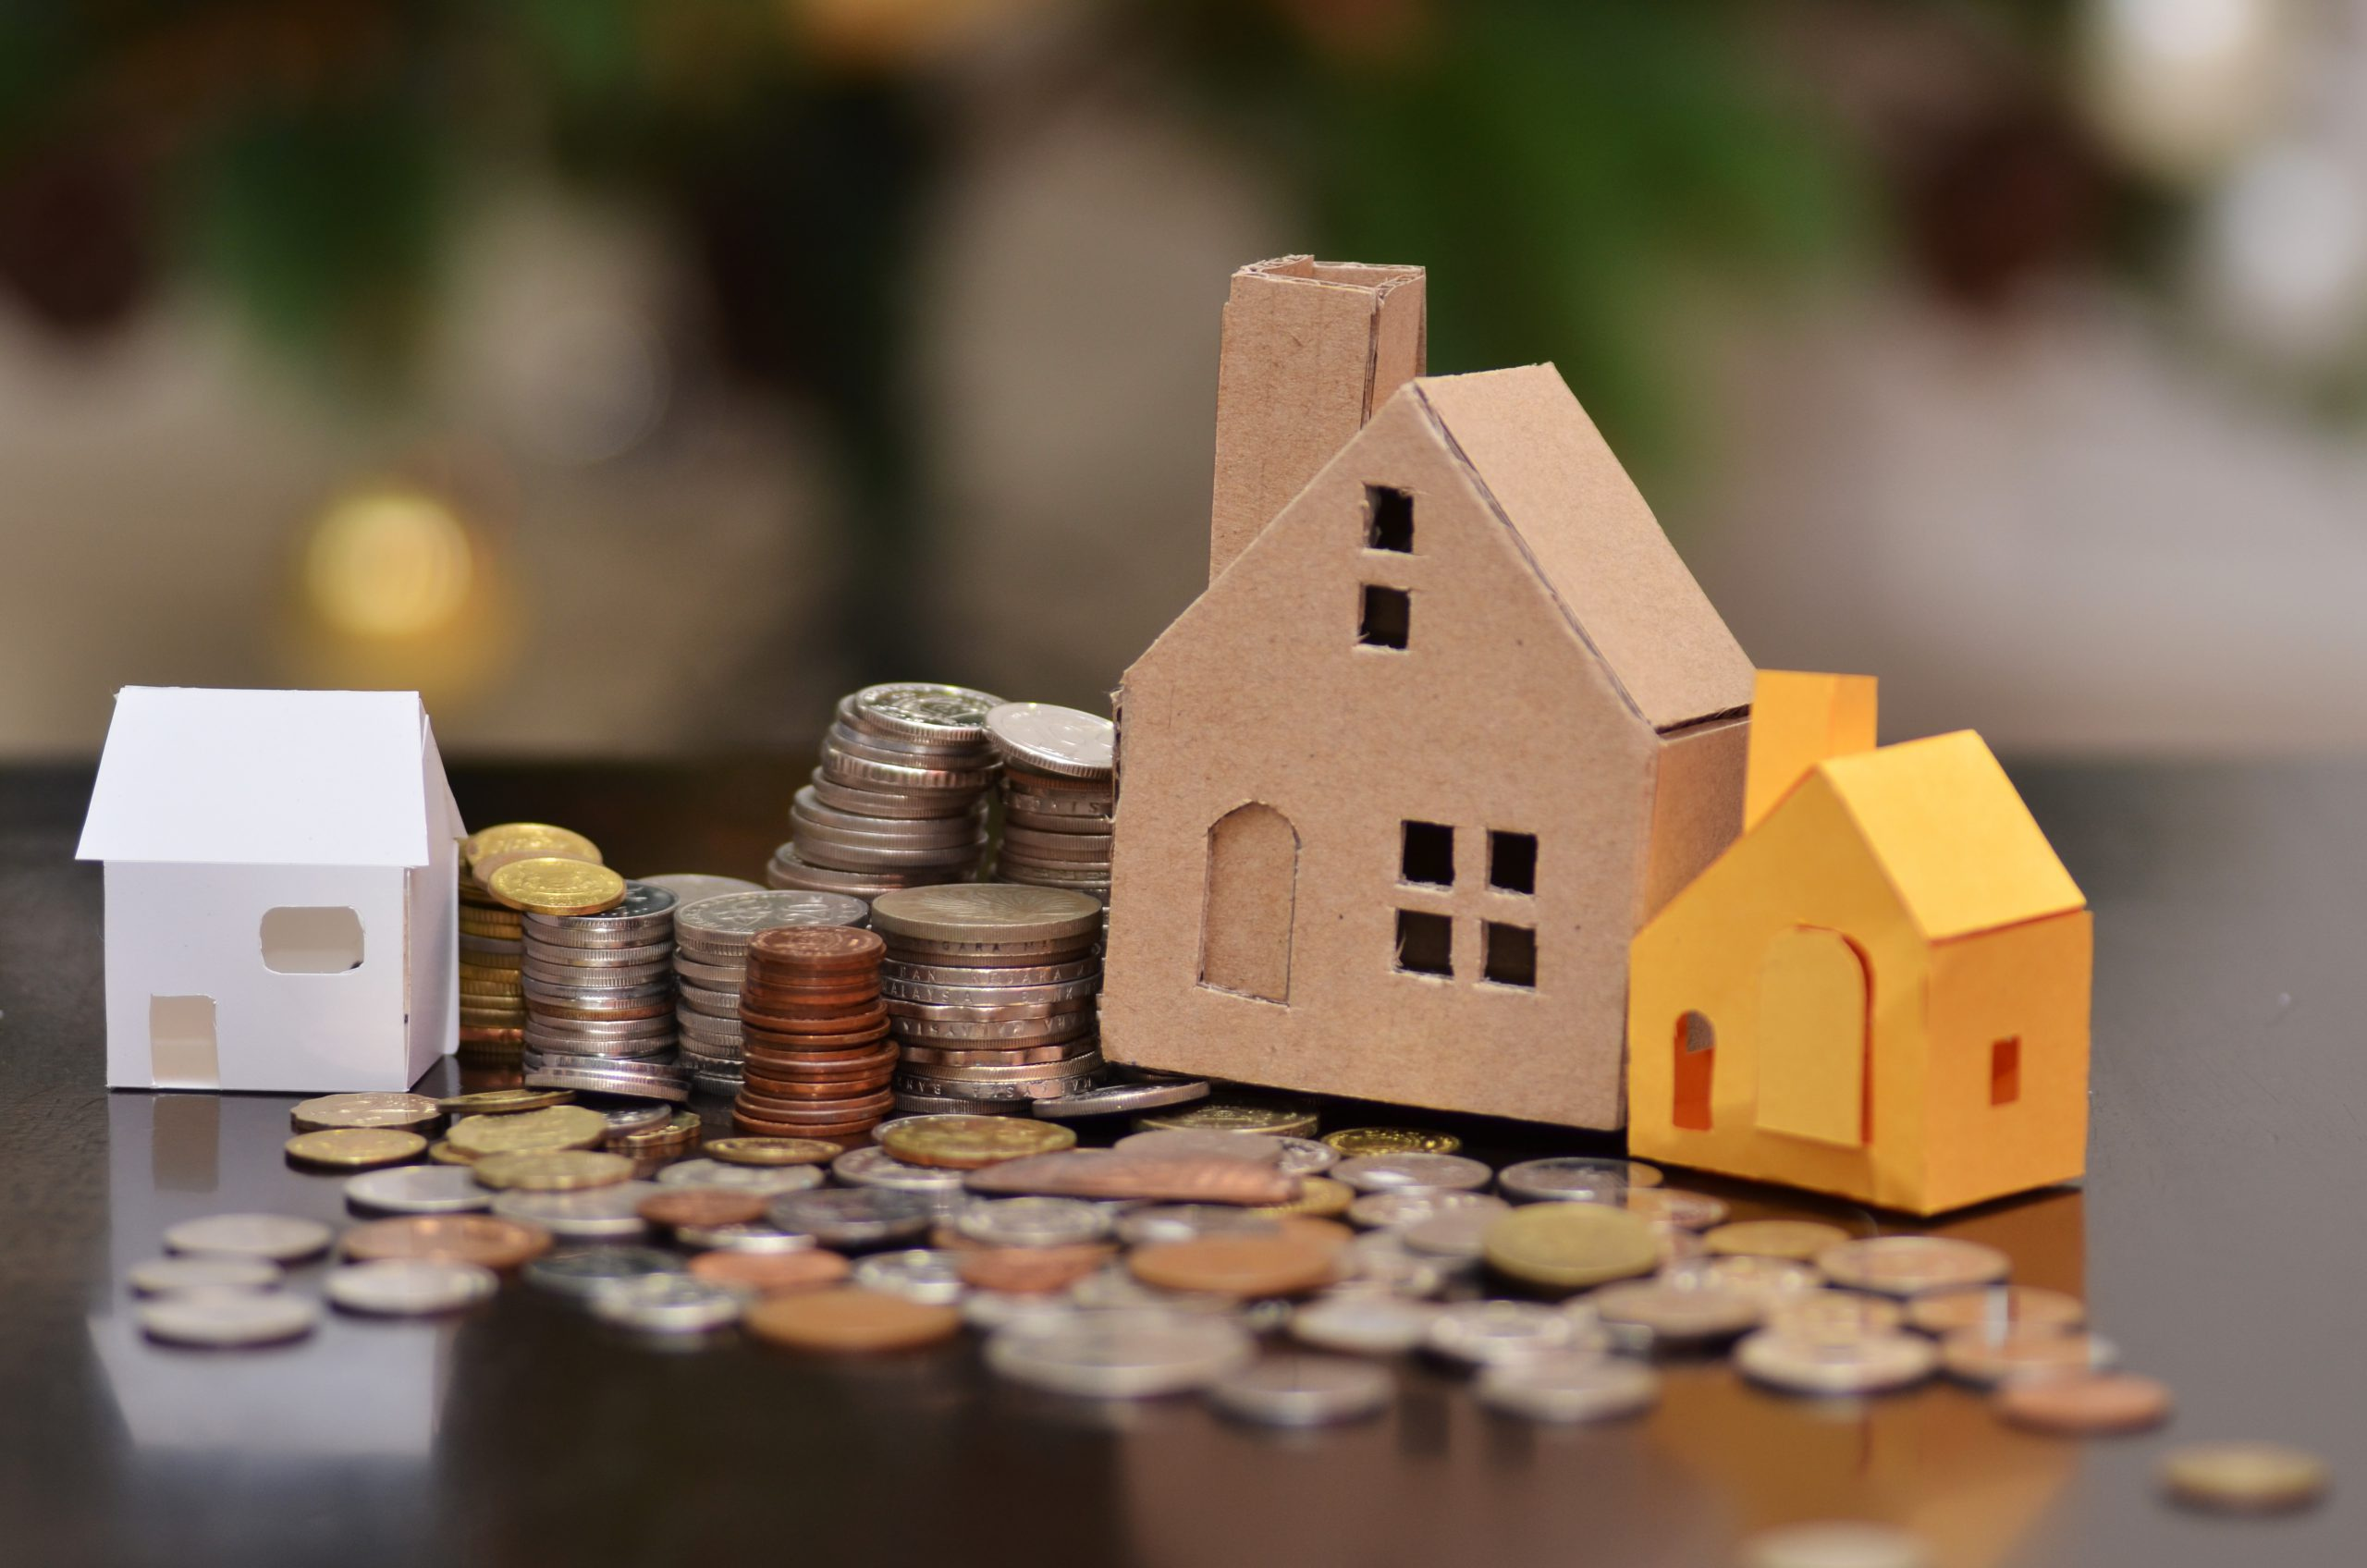 toy houses with coins